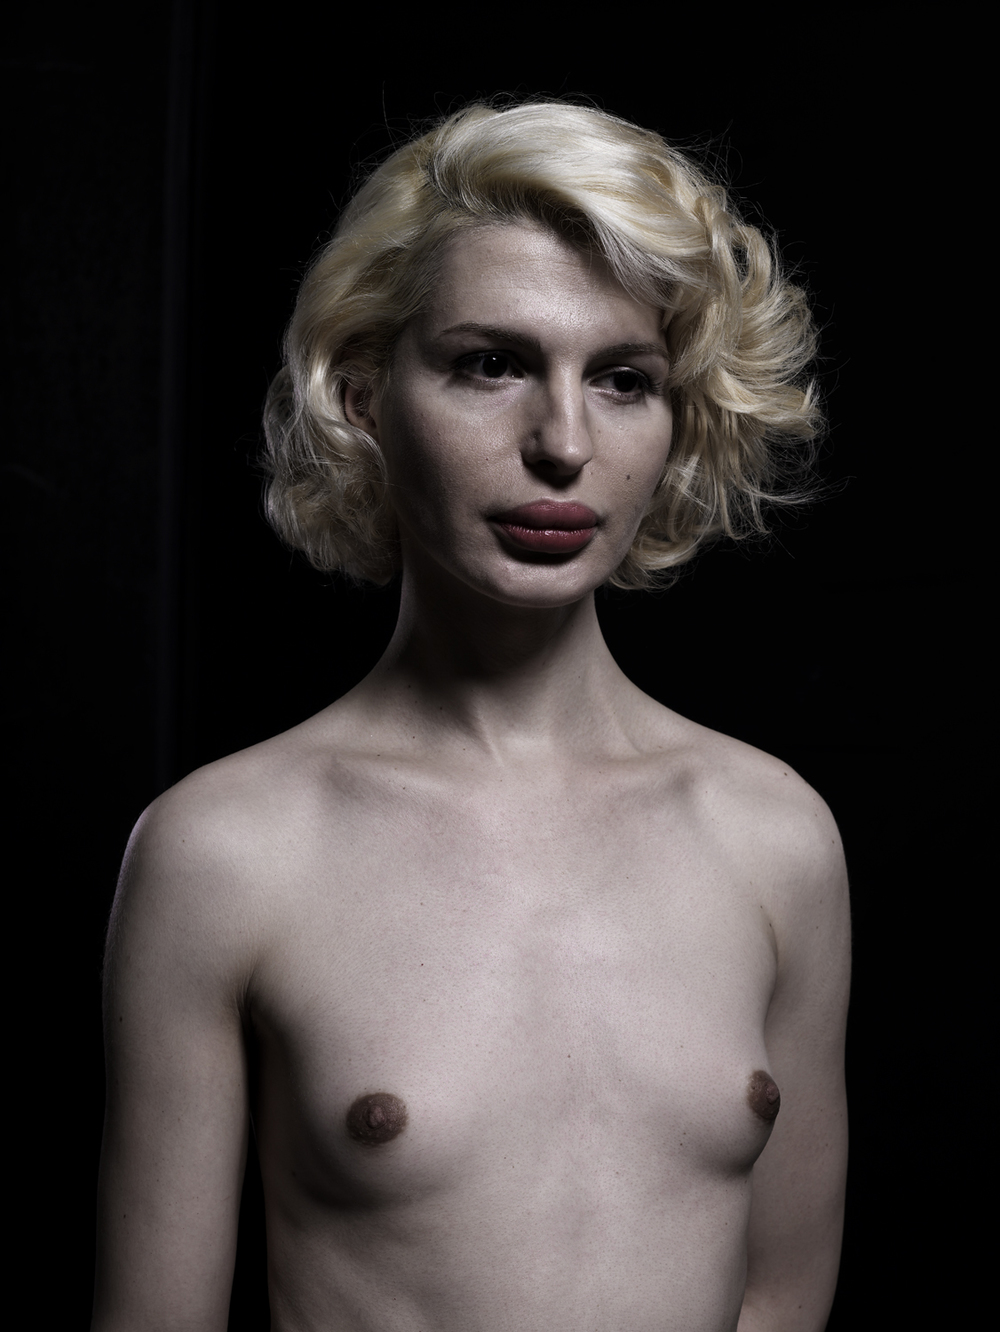 From A New Kind of Beauty: Angel © Phillip Toledano